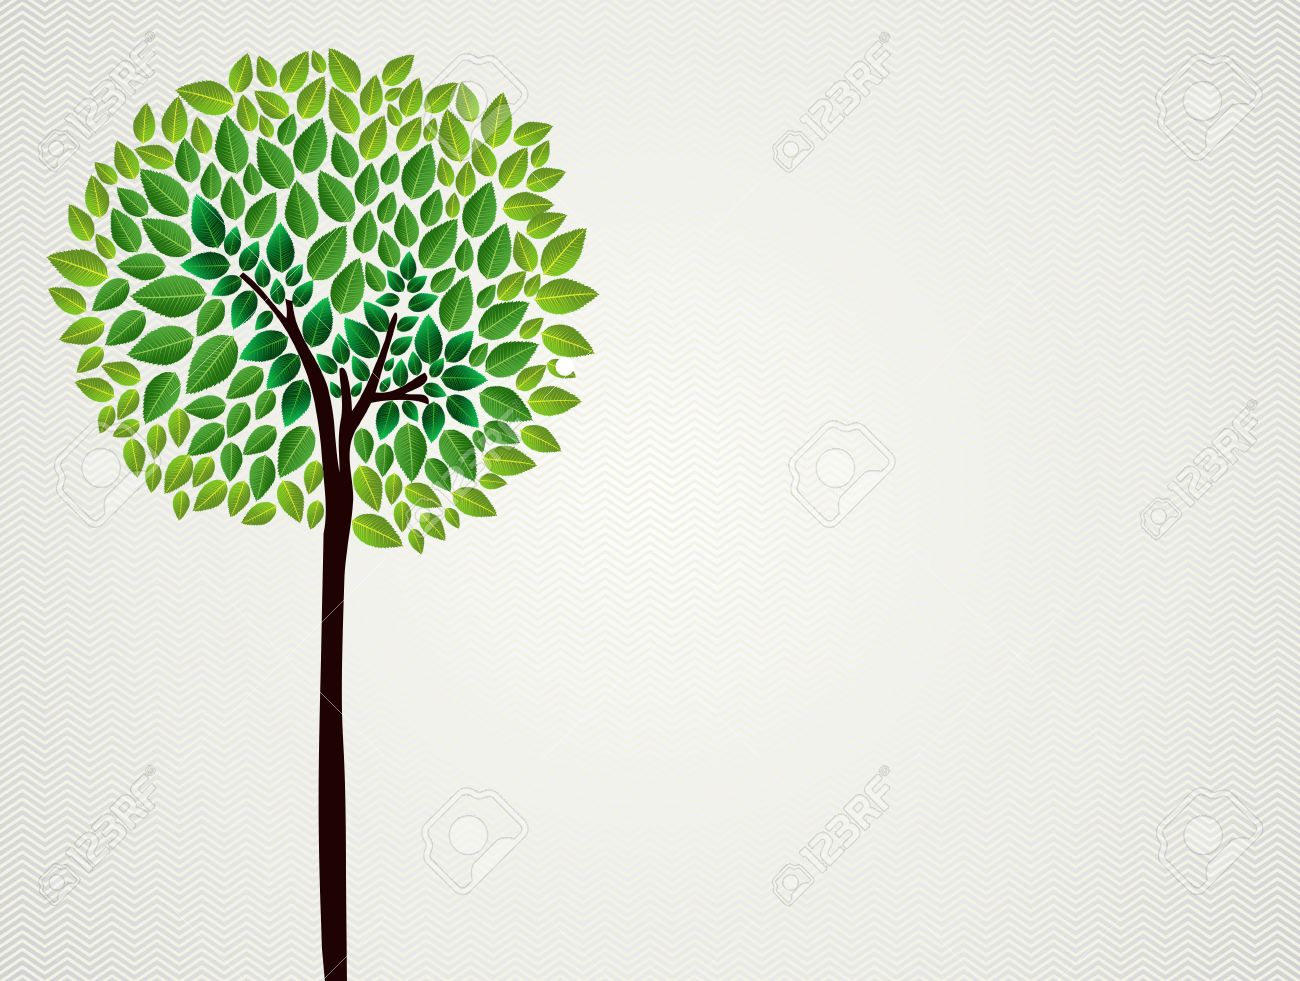 Easy Tree Drawing at GetDrawings.com | Free for personal use Easy ...